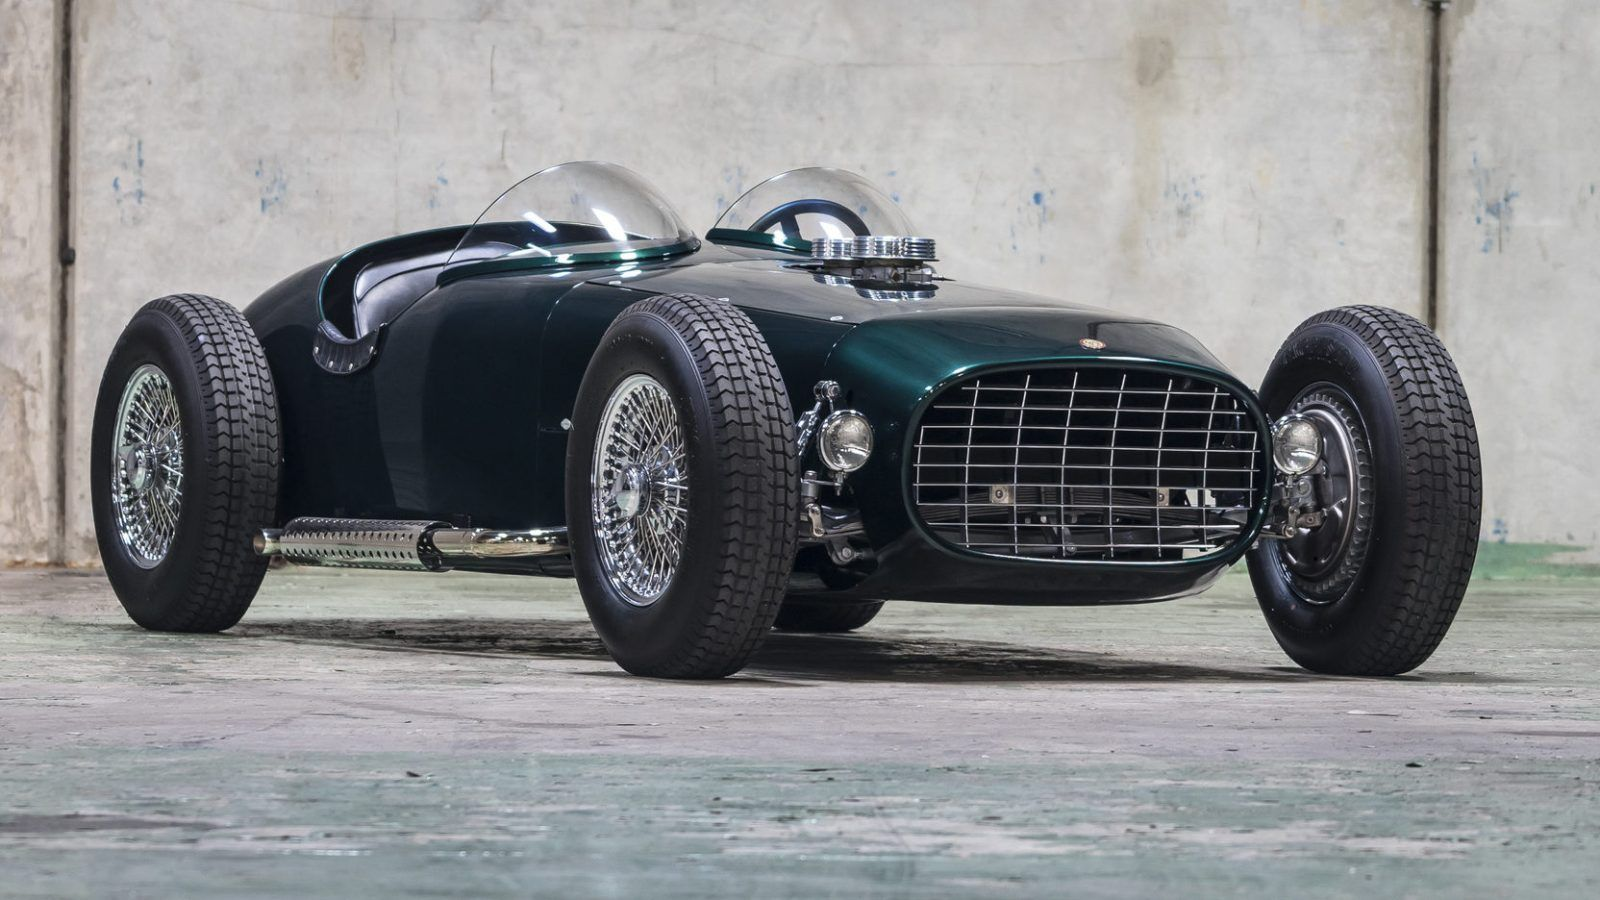 1959 Troy Custom Roadster | Troy, Cars and Maserati